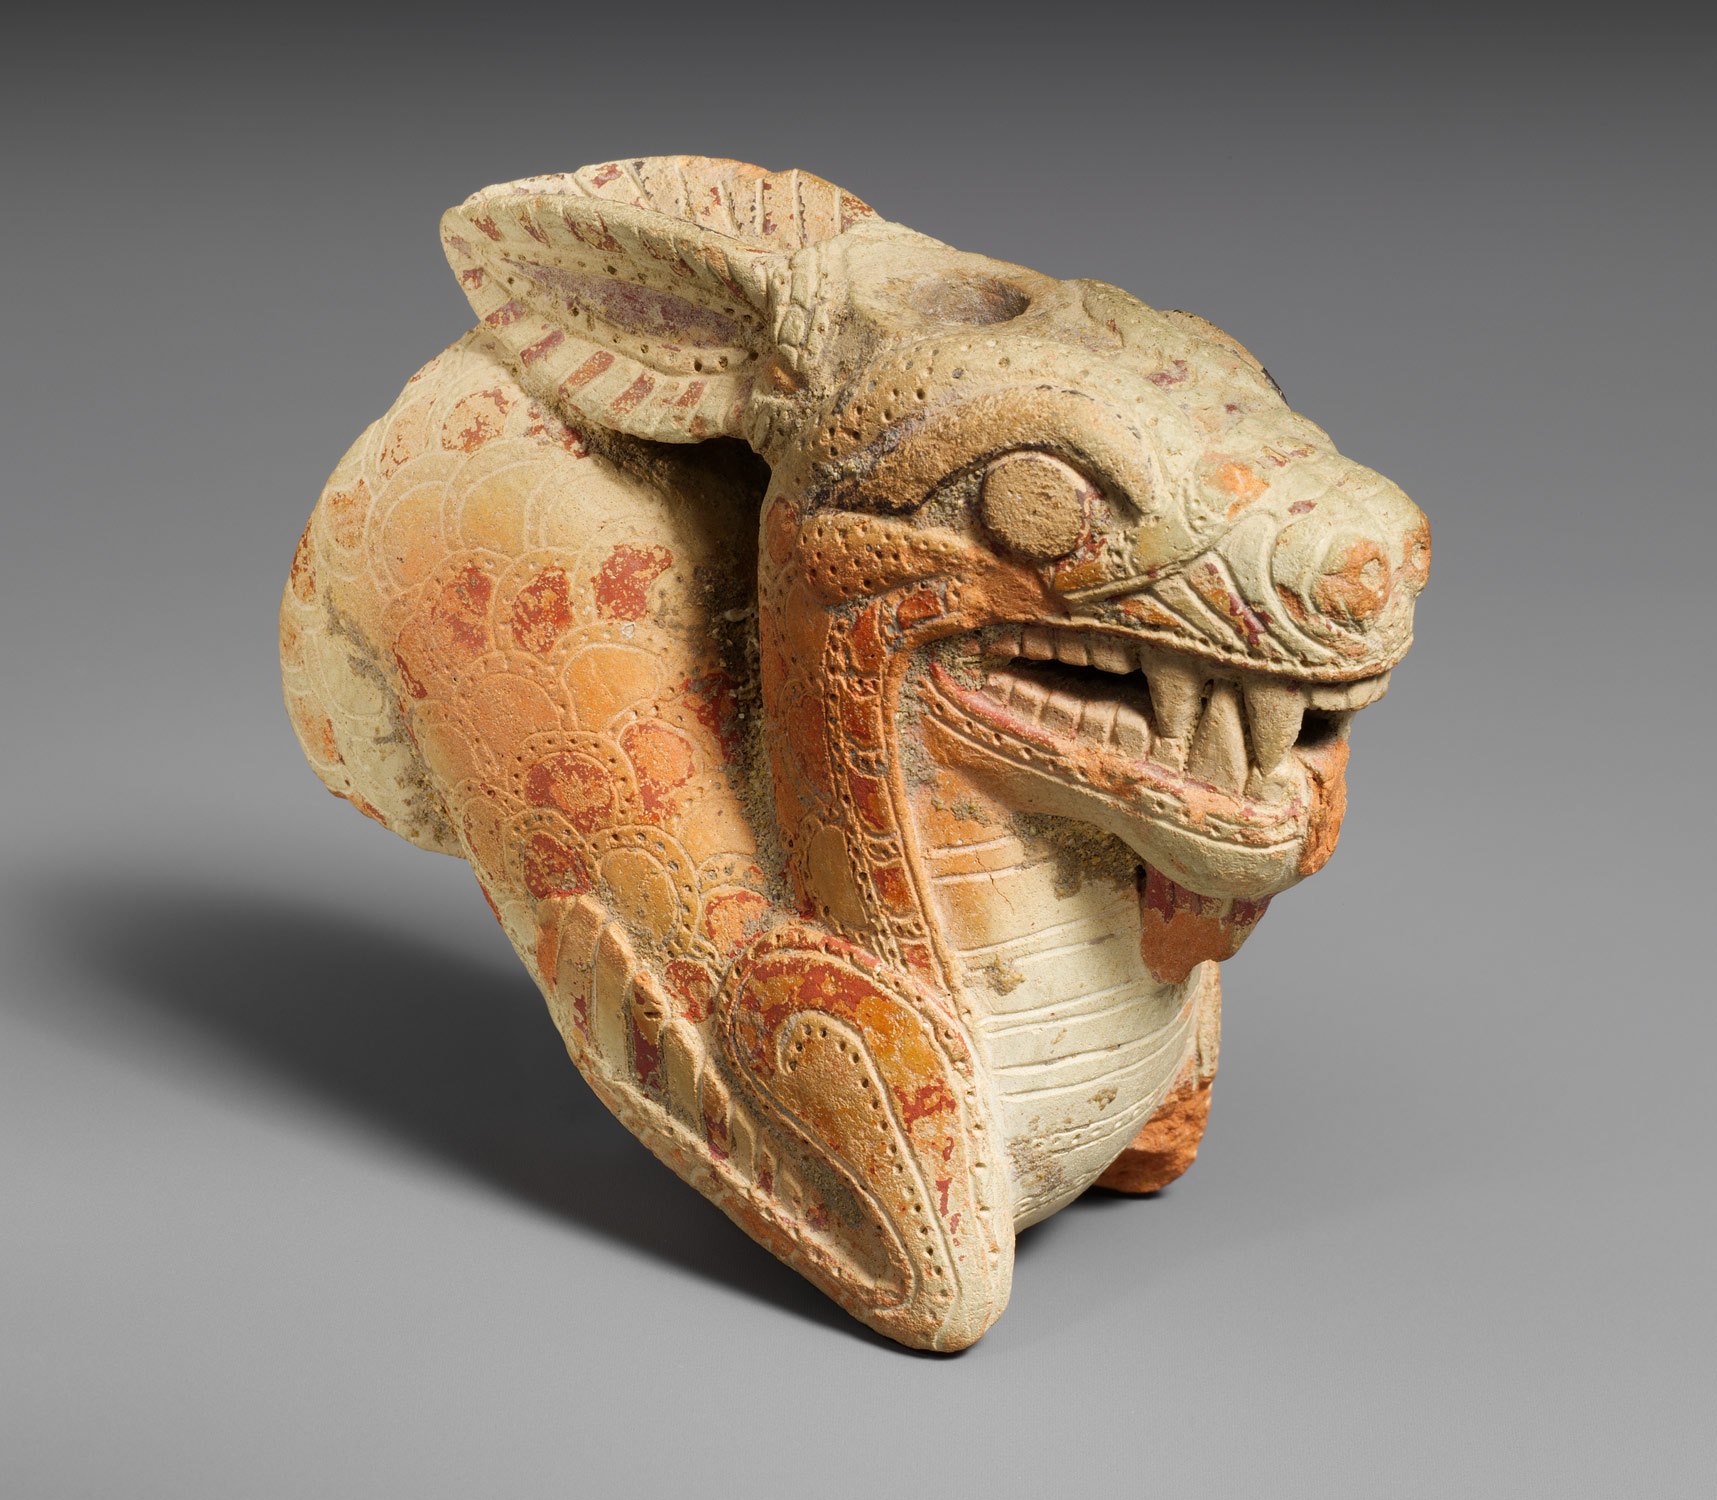 Terracotta vase in the form of a ketos (sea monster)